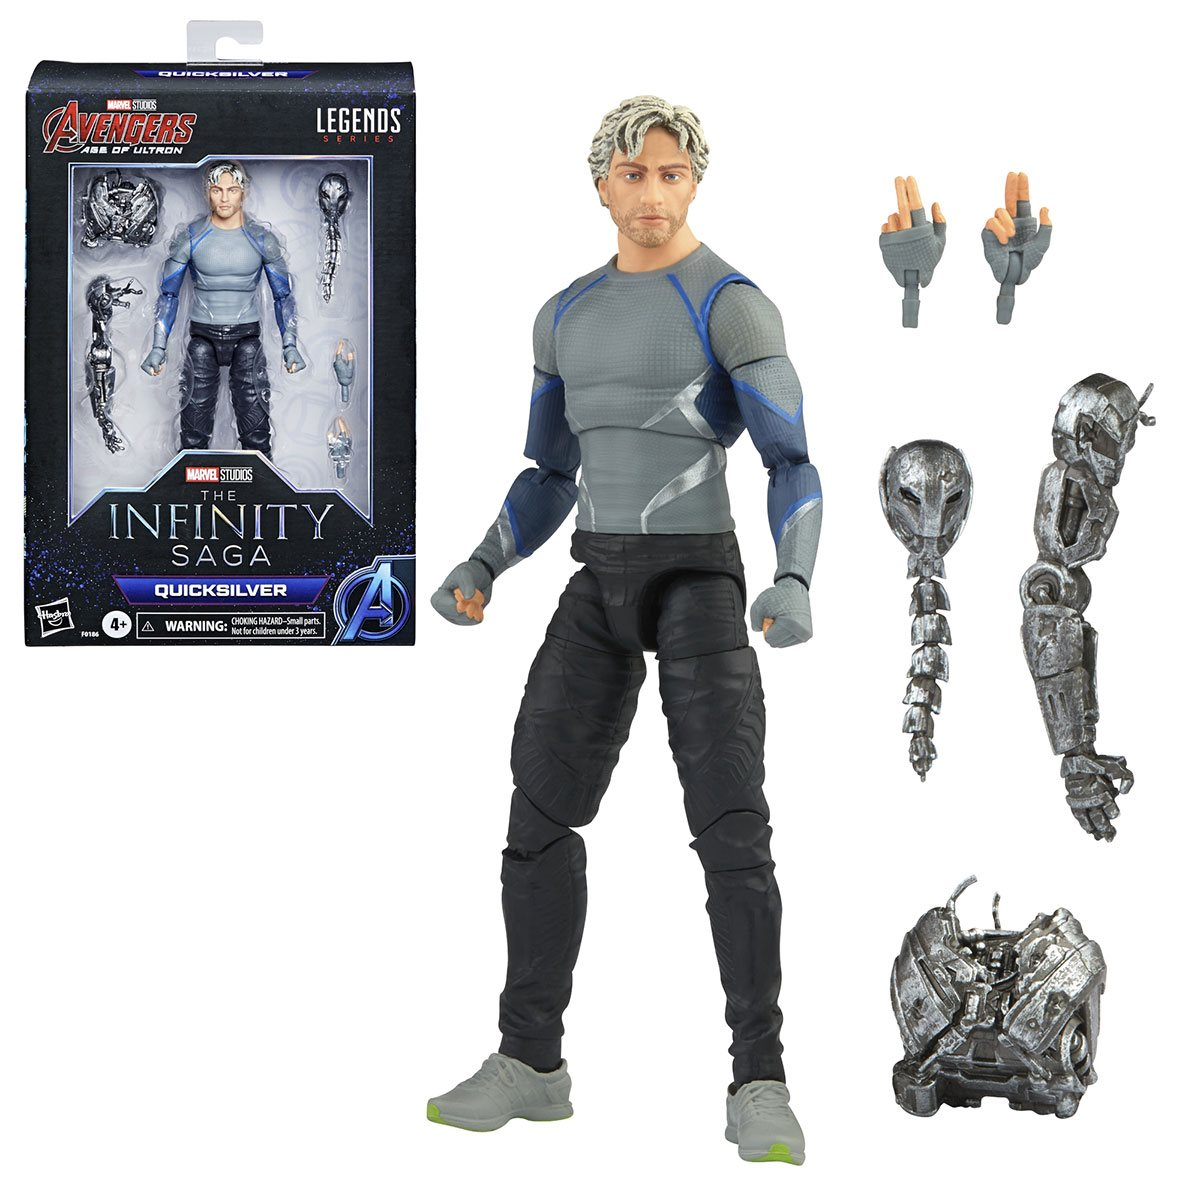 Quicksilver boxed and loose